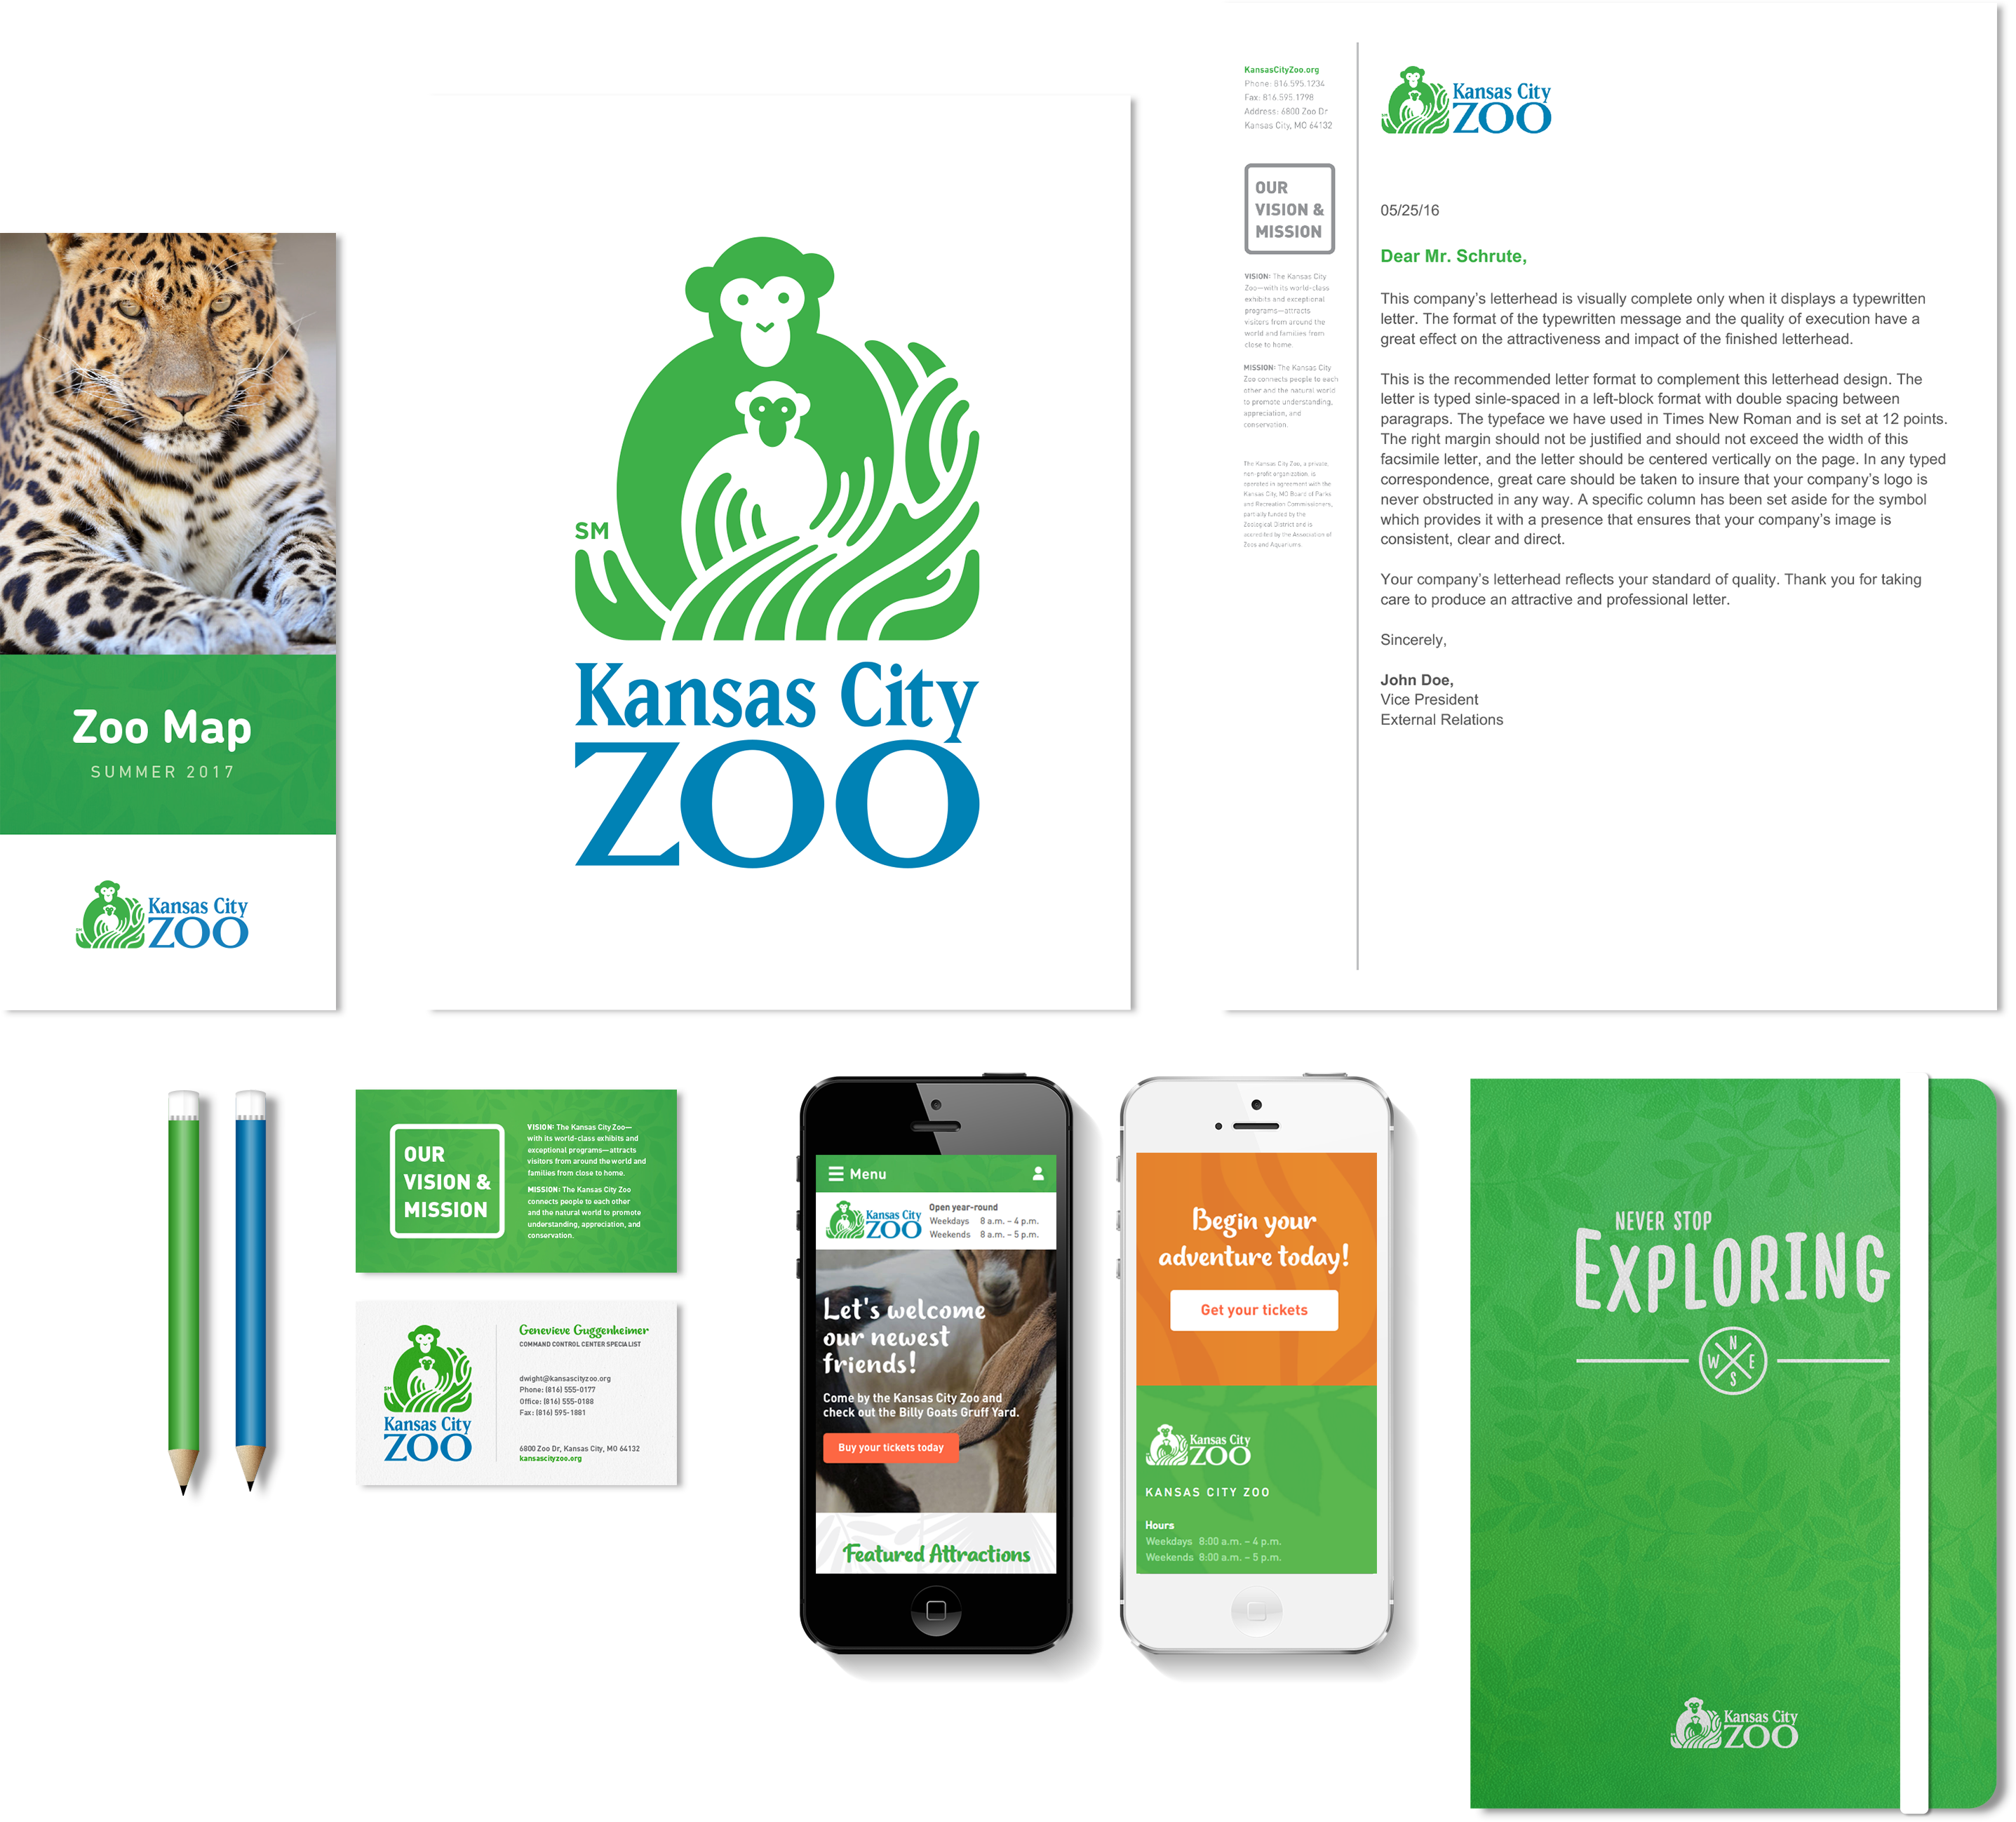 How Our Kansas City Web Design Team Used Using Graphic Design To Redesign The Kansas City Zoo Brand